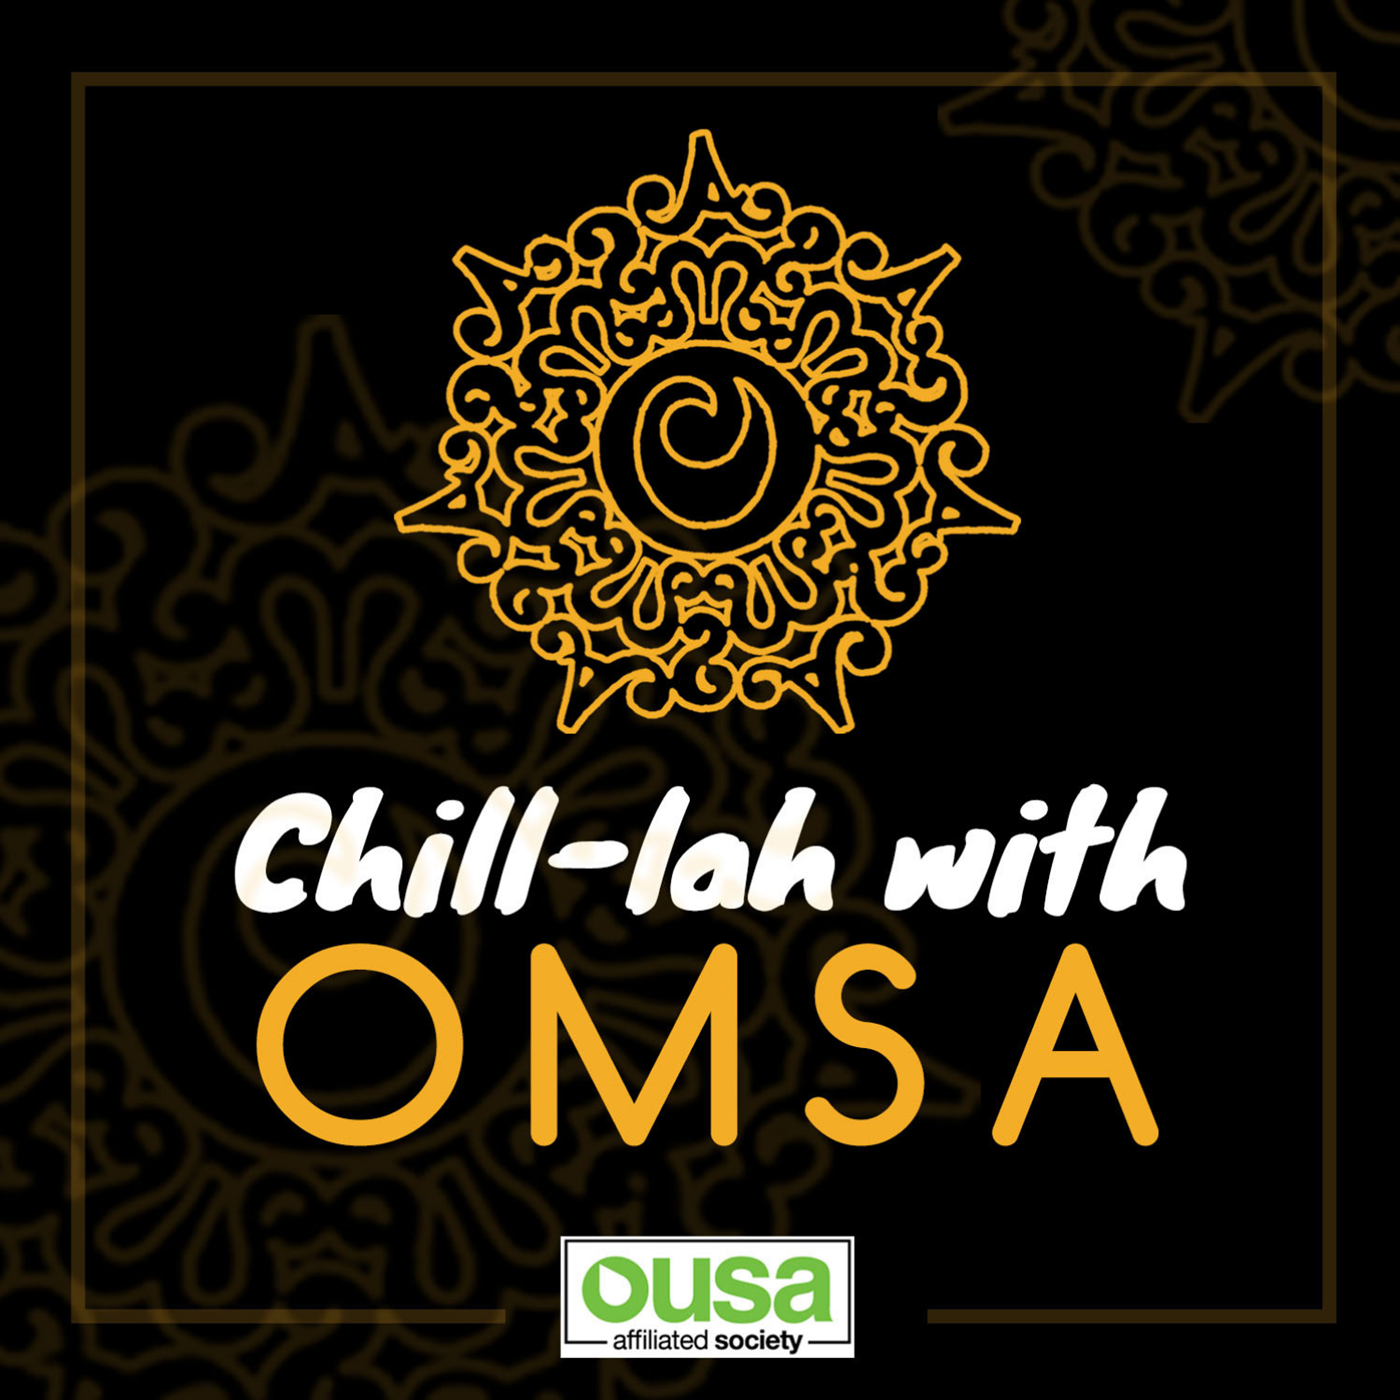 Chill-lah with OMSA - 06-04-2020